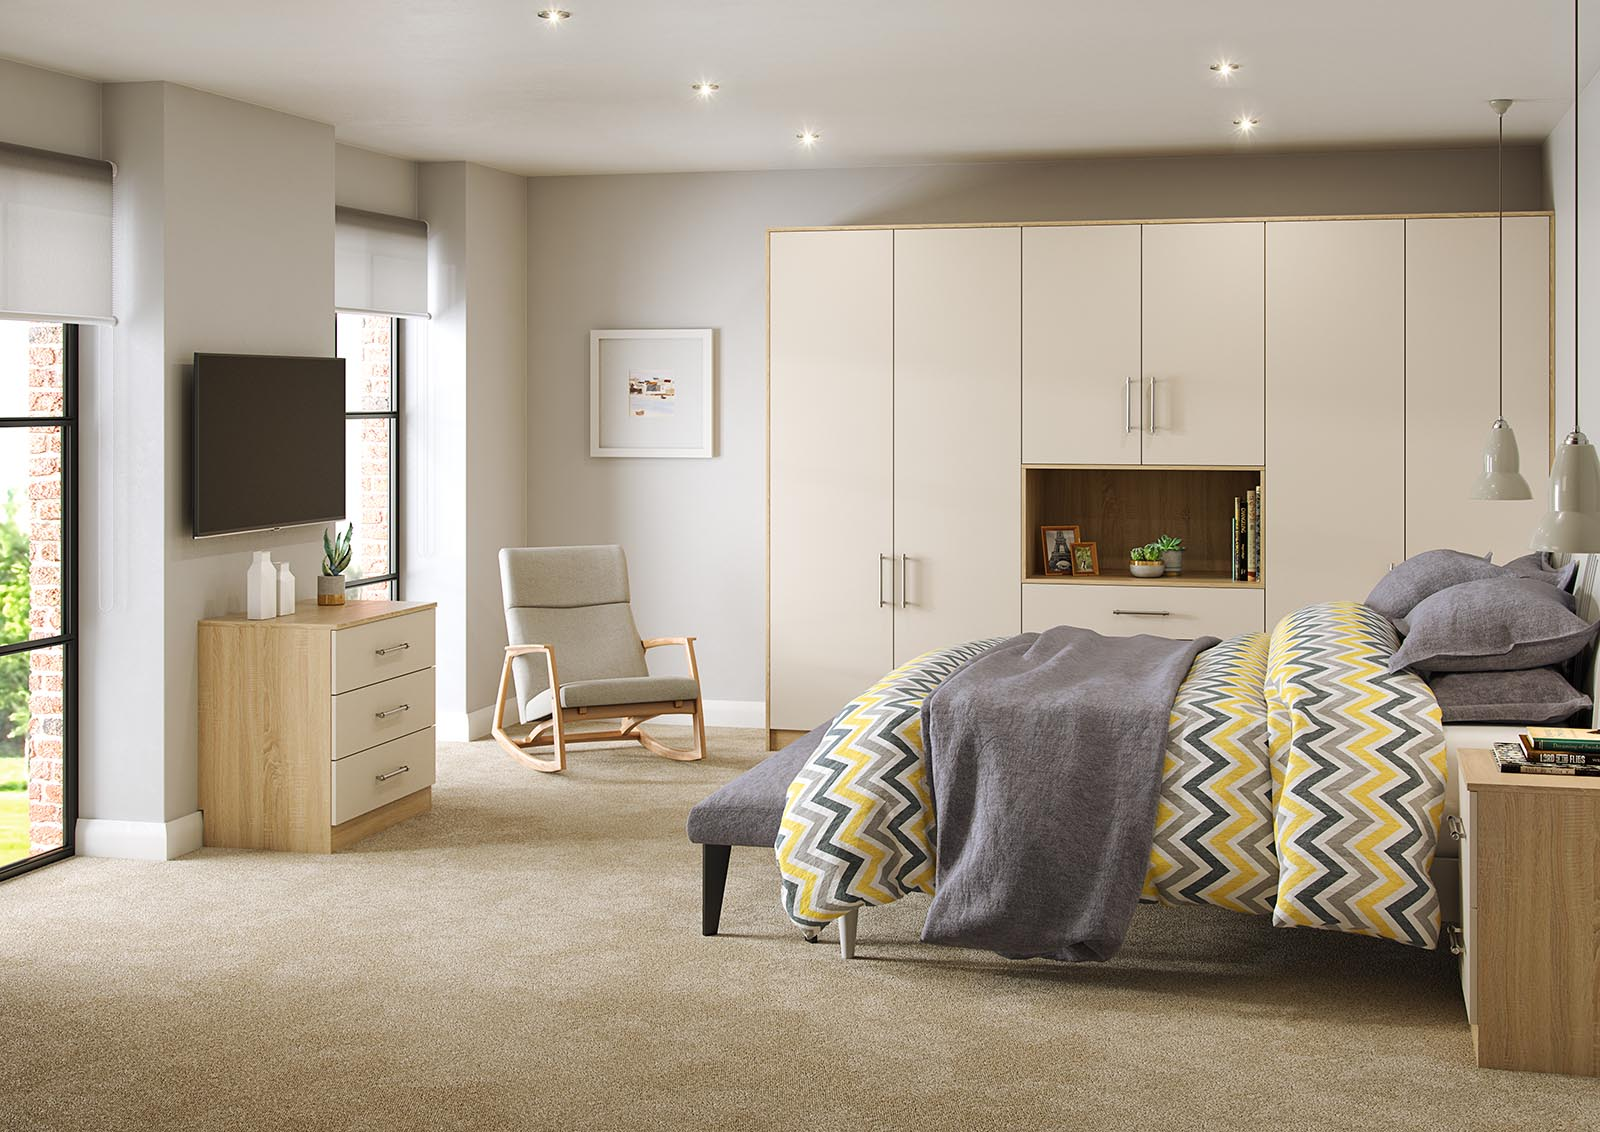 Interior CGI Bedroom Luna Visualisation